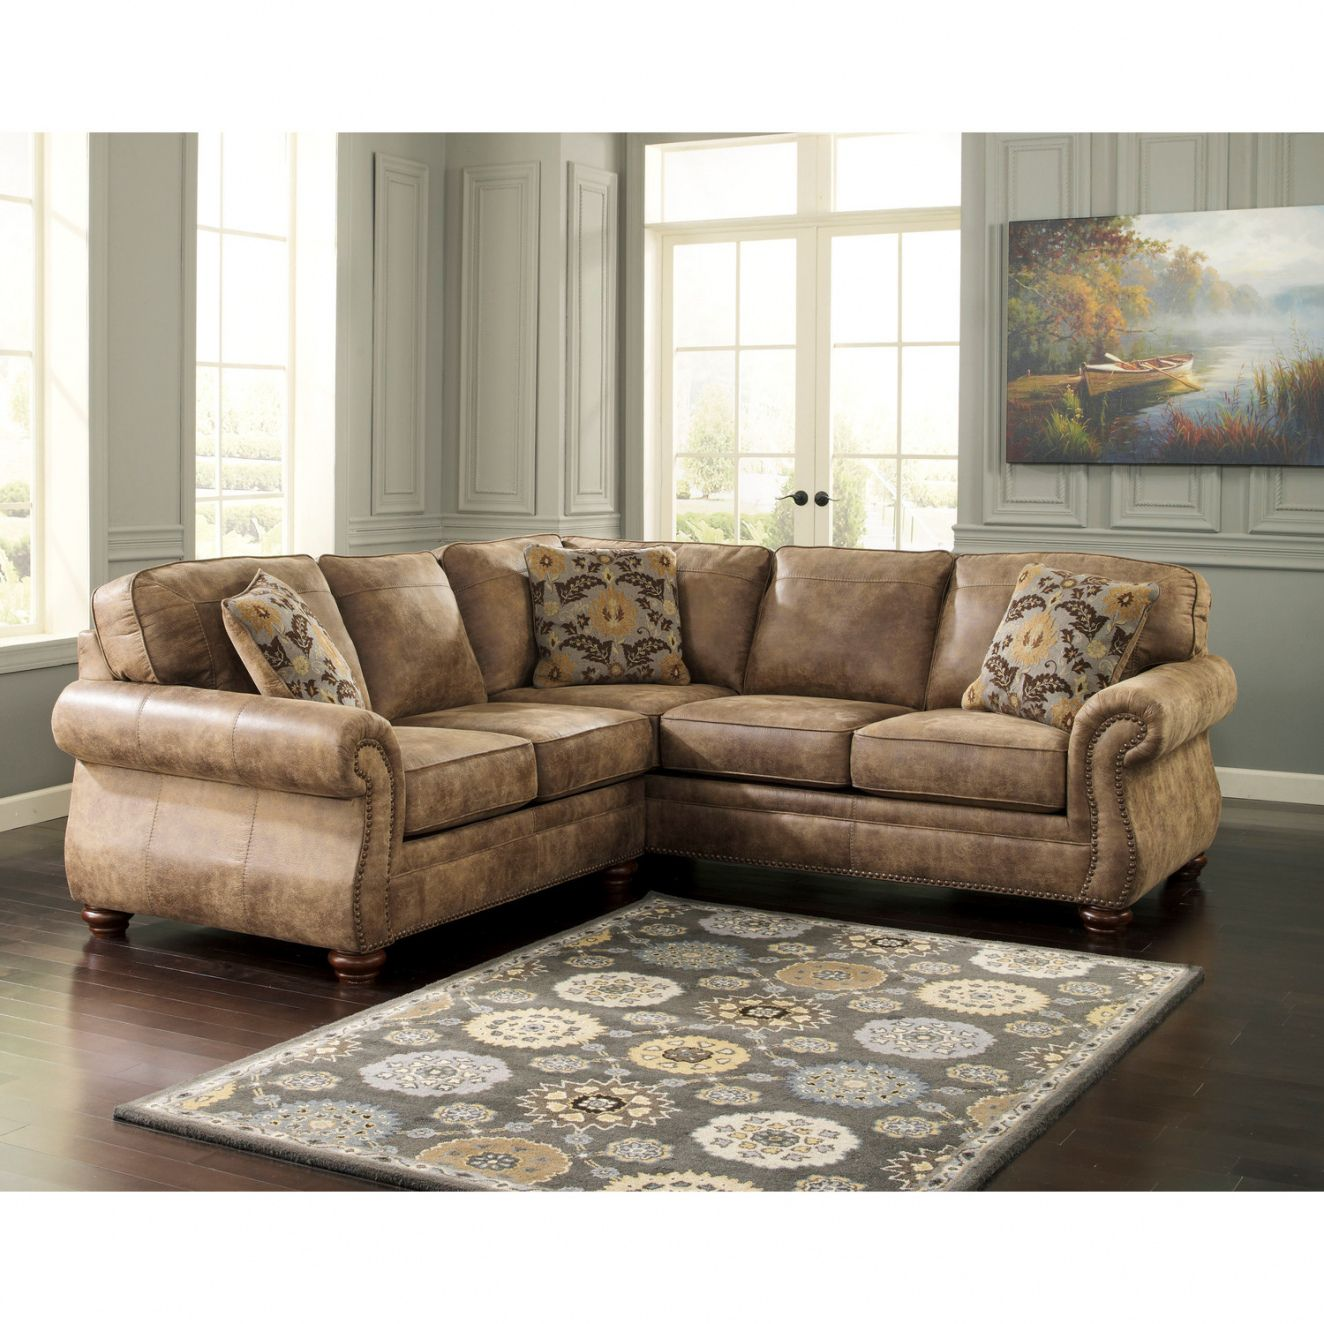 Small brown sectional sofa interior house paint ideas check more